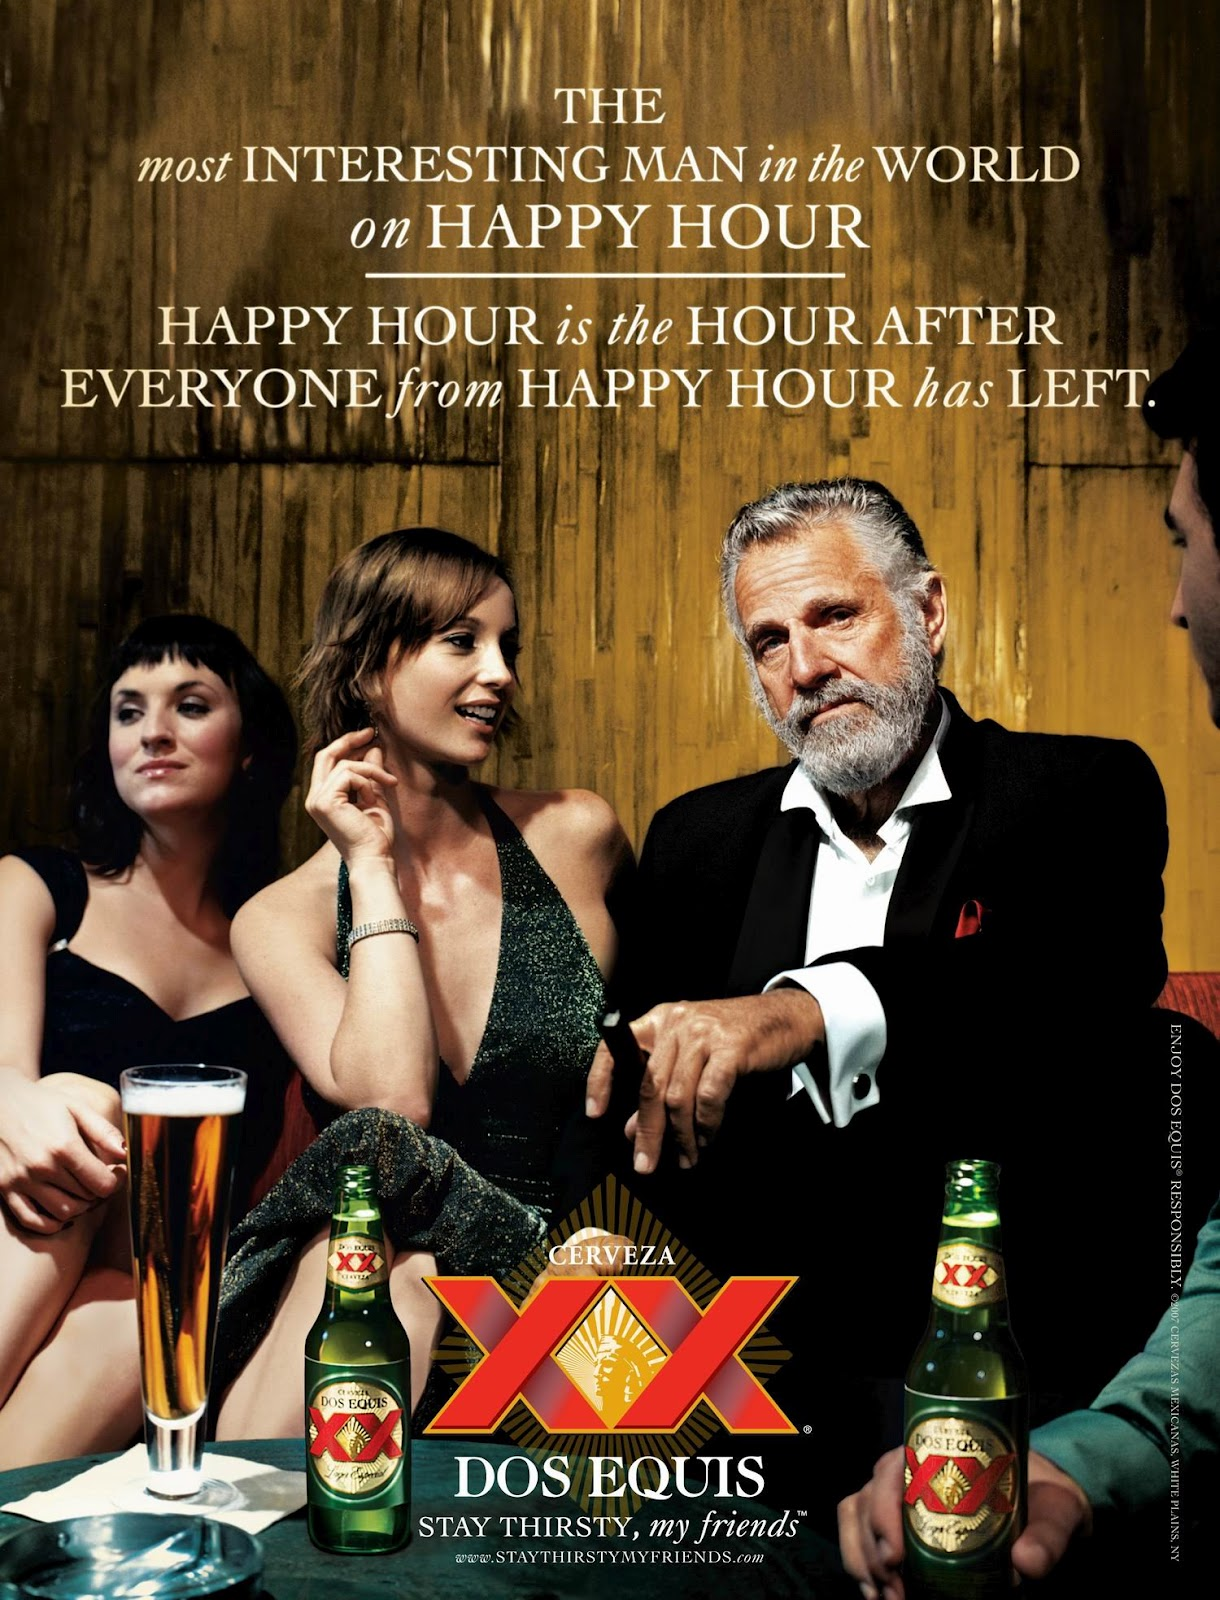 The Interesting Man In The World Quotes: Fondos De Pantalla Dos Equis (XX)